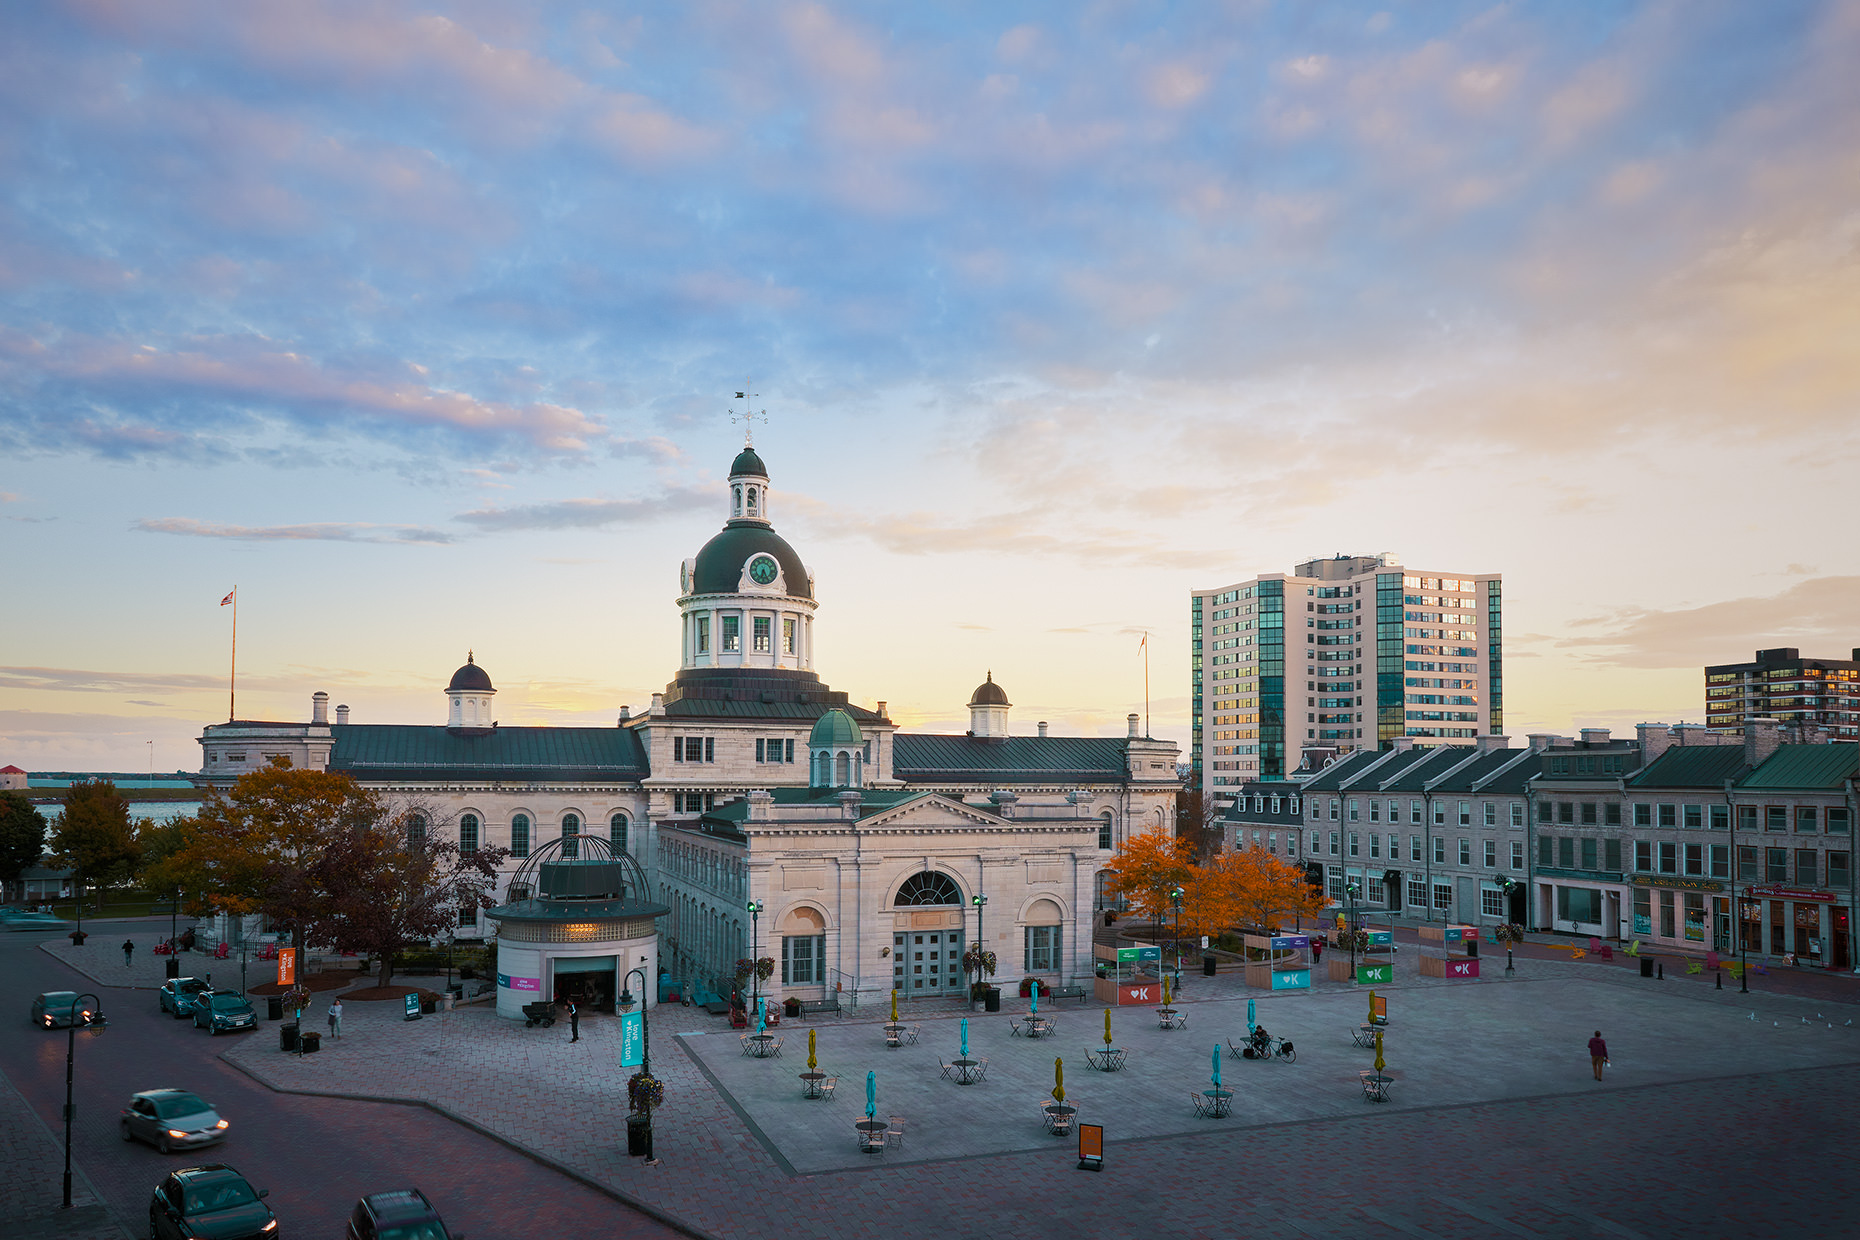 Matthew liteplo took this exterior architecture image of beautiful downtown Kingston Ontario.  As a commercial Photographer, Matthew travels throughout Canada to capture gorgeous images for tourism advertising.